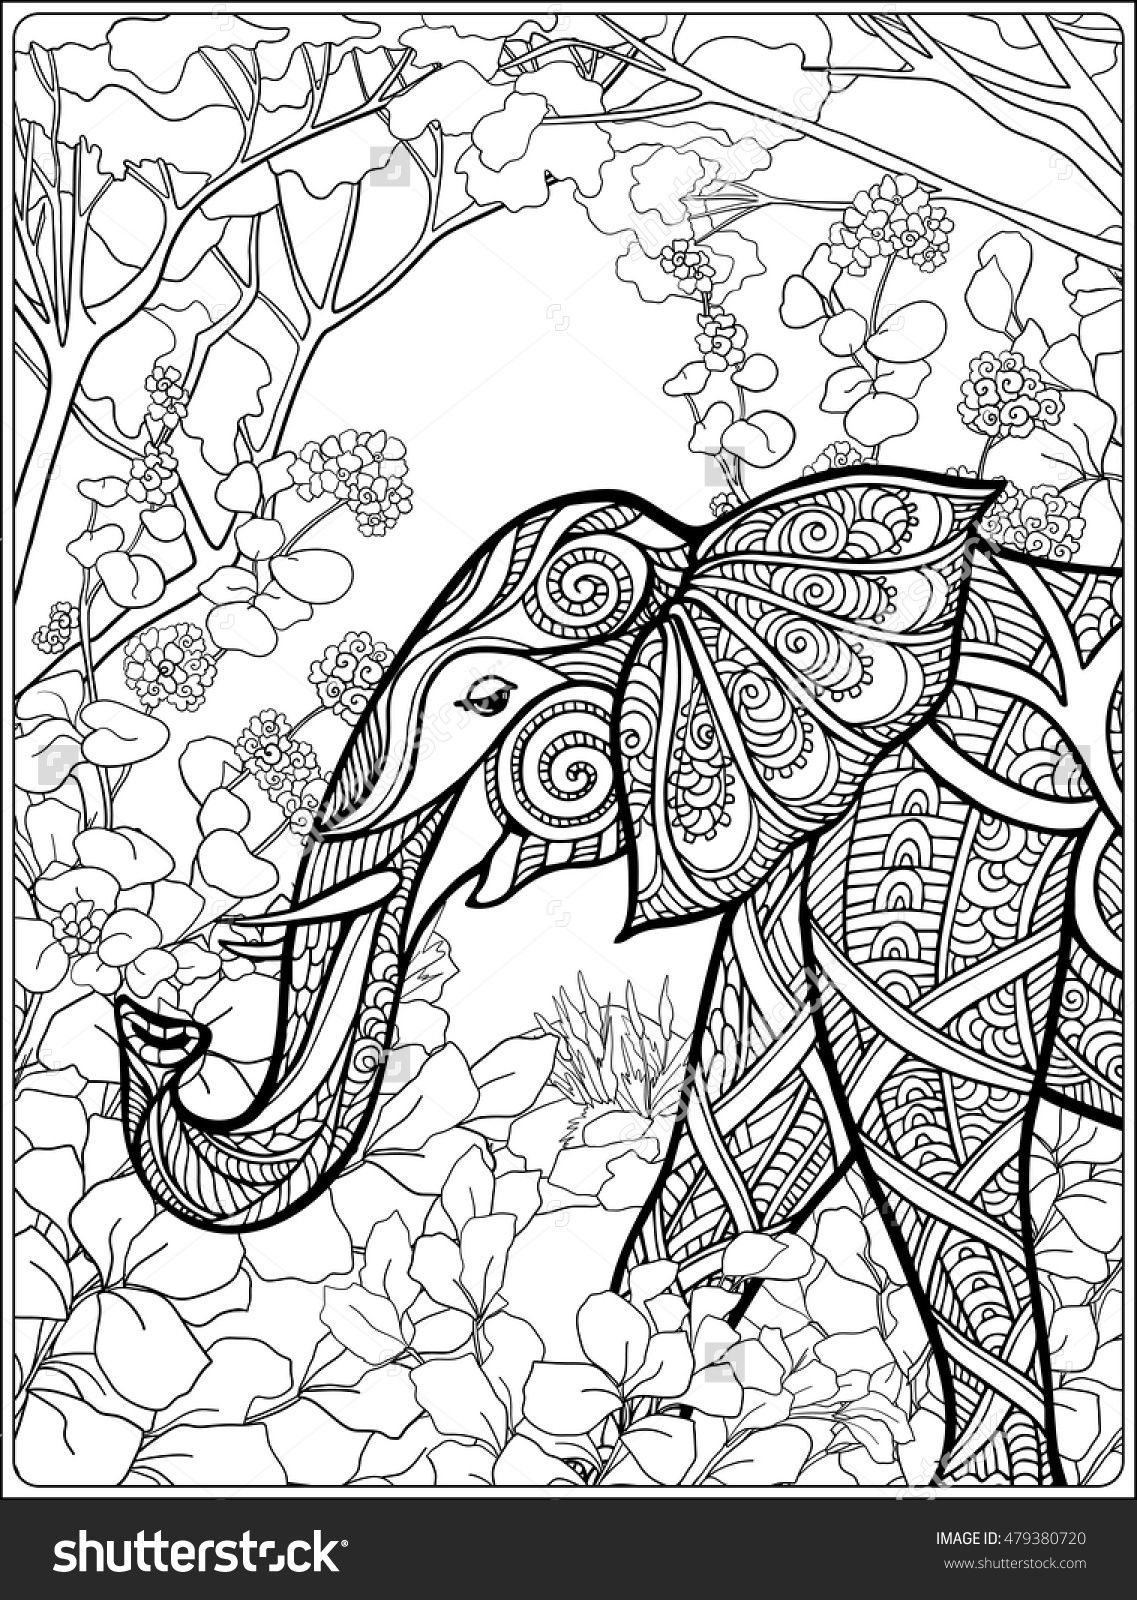 elephant in the forest coloring page for adults : Shutterstock ...